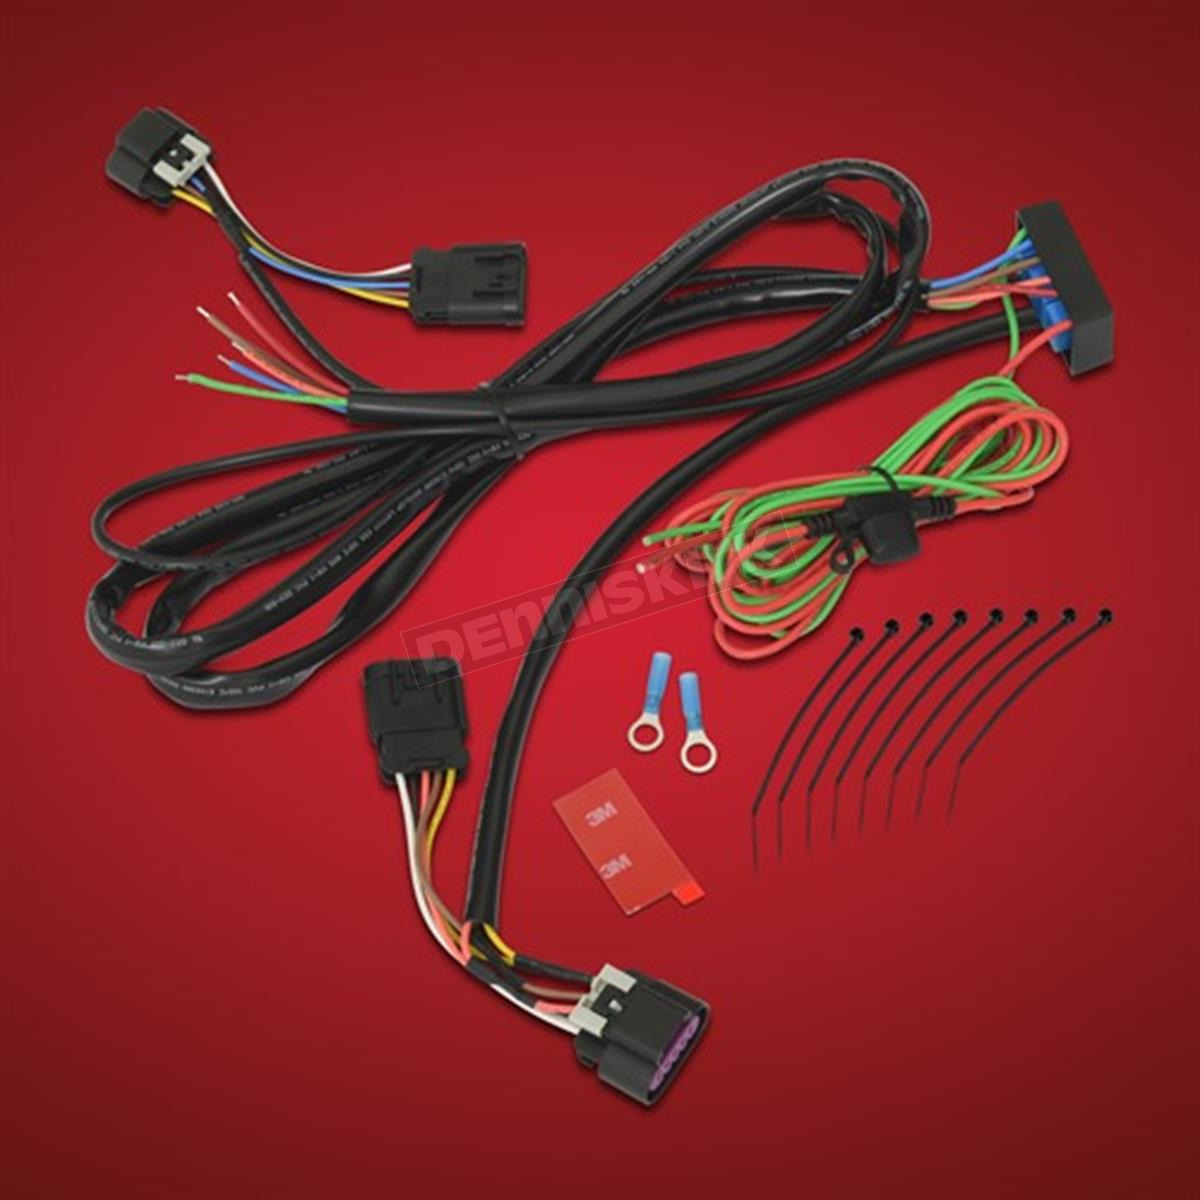 Show Chrome Accessories Trailer Wiring Harness 41 362 Cruiser Specialties Review